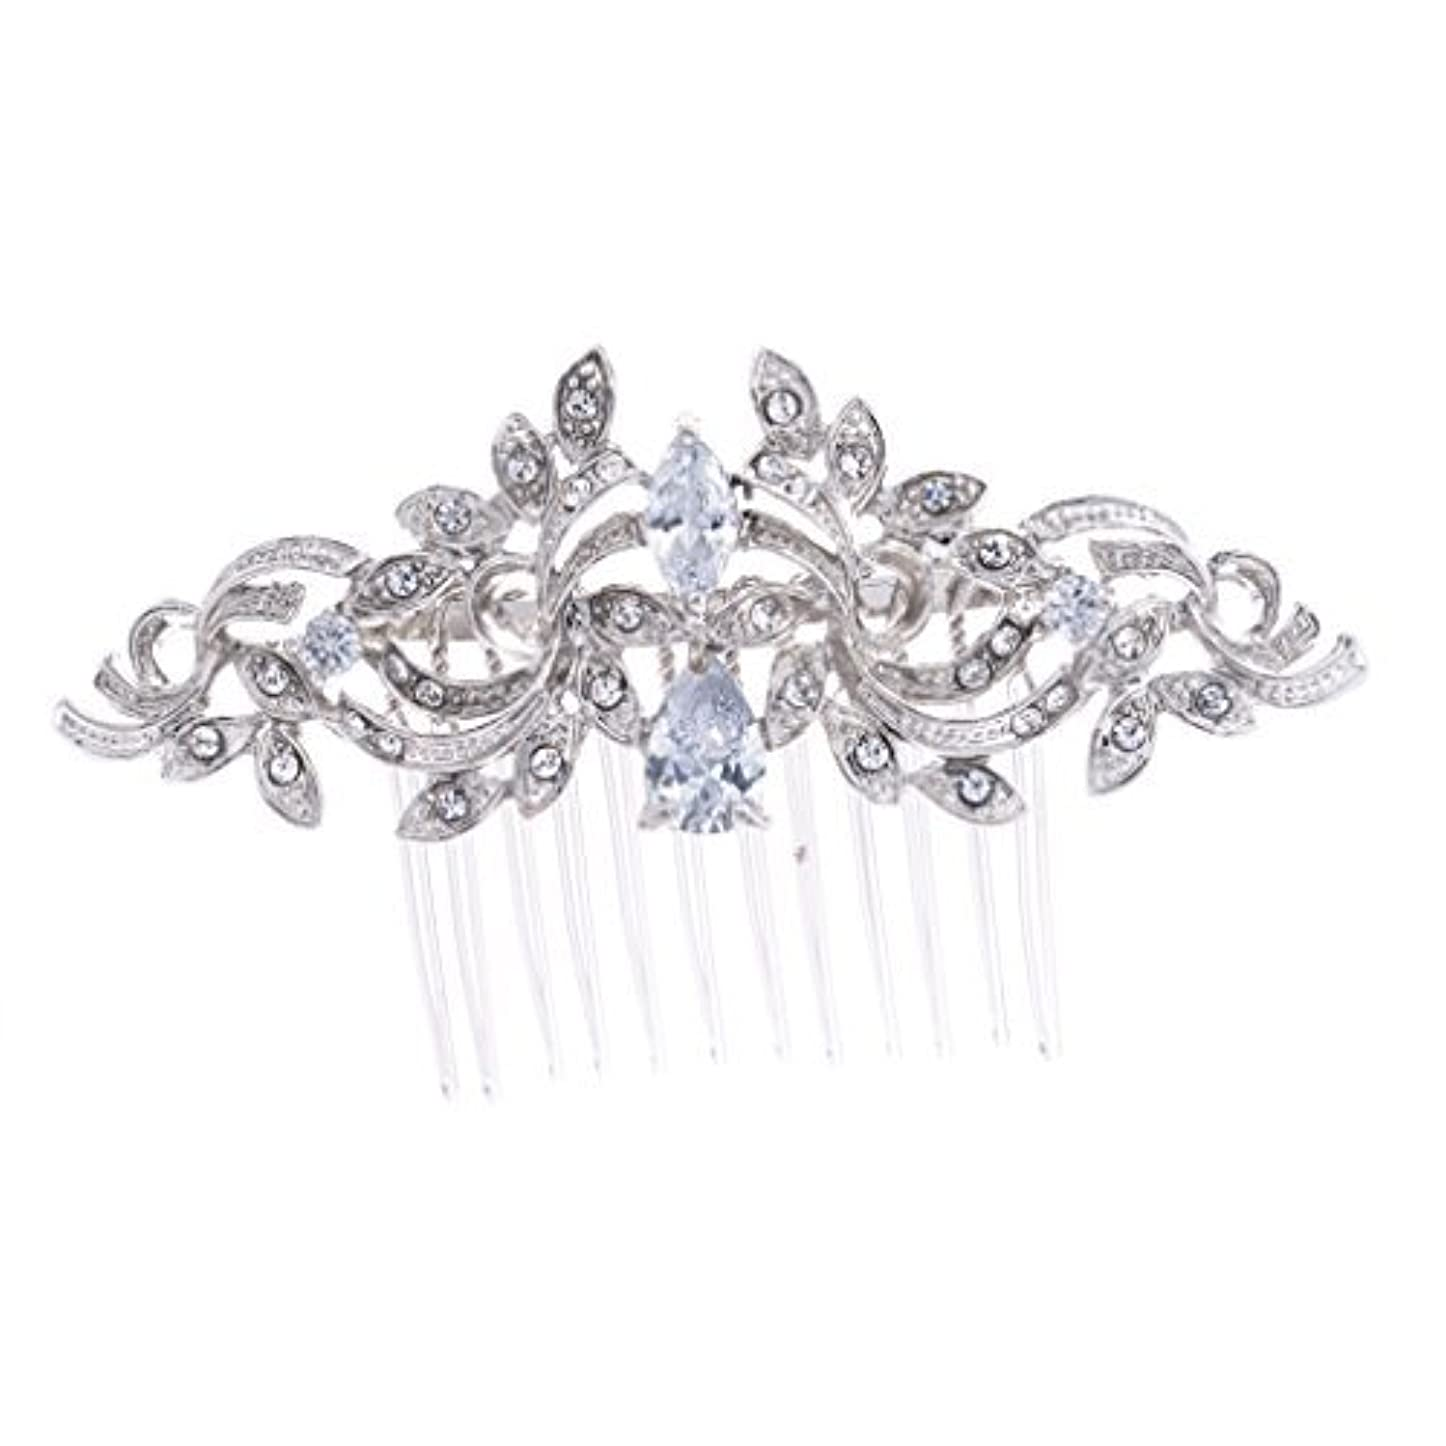 誘導人里離れたカイウスSEPBRIDALS Crystal Rhinestone Leaves Hair Comb Hair Pins Bridal Wedding Hair Accessories Jewelry 4012R [並行輸入品]